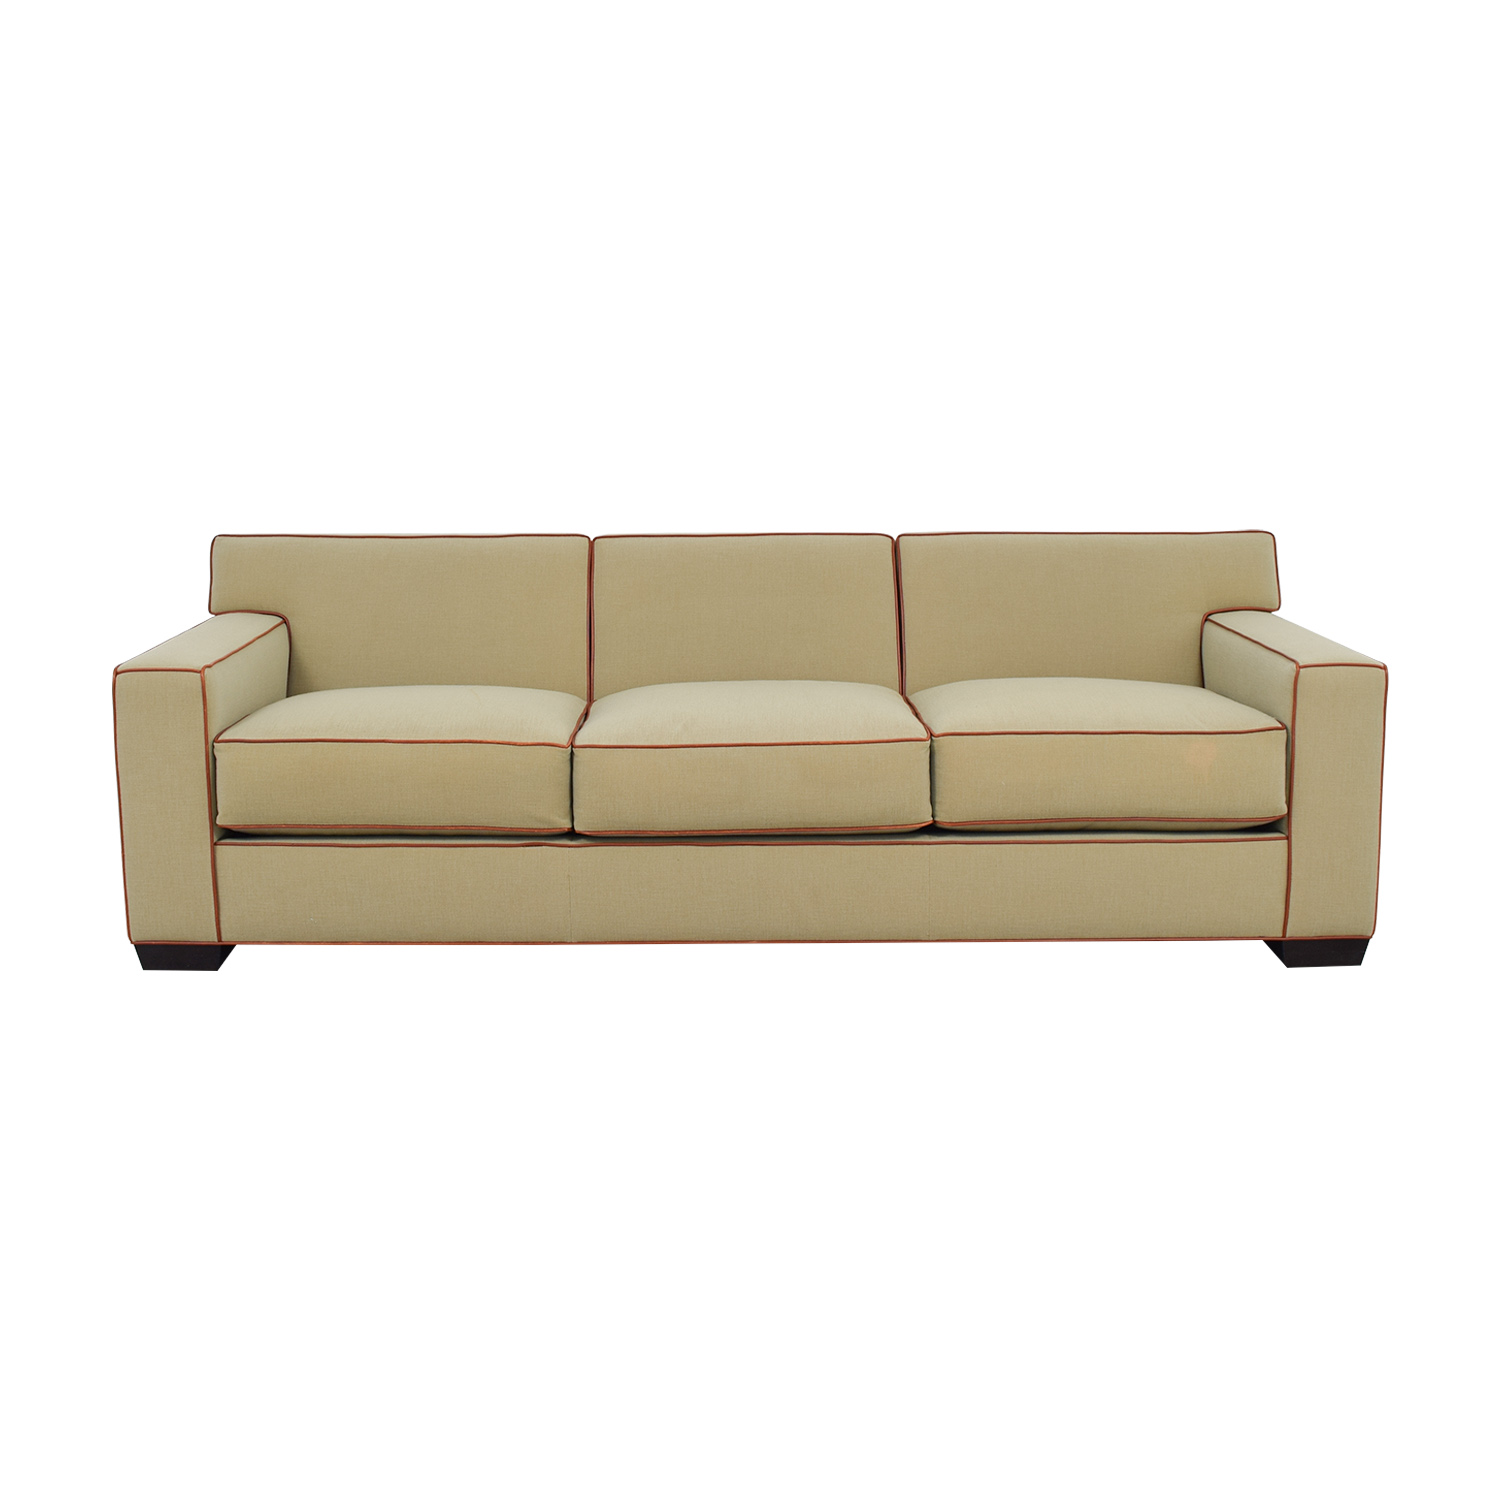 Mattaliano Mattaliano Beige with Cognac Leather Trimmed Three-Cushion Sofa nyc